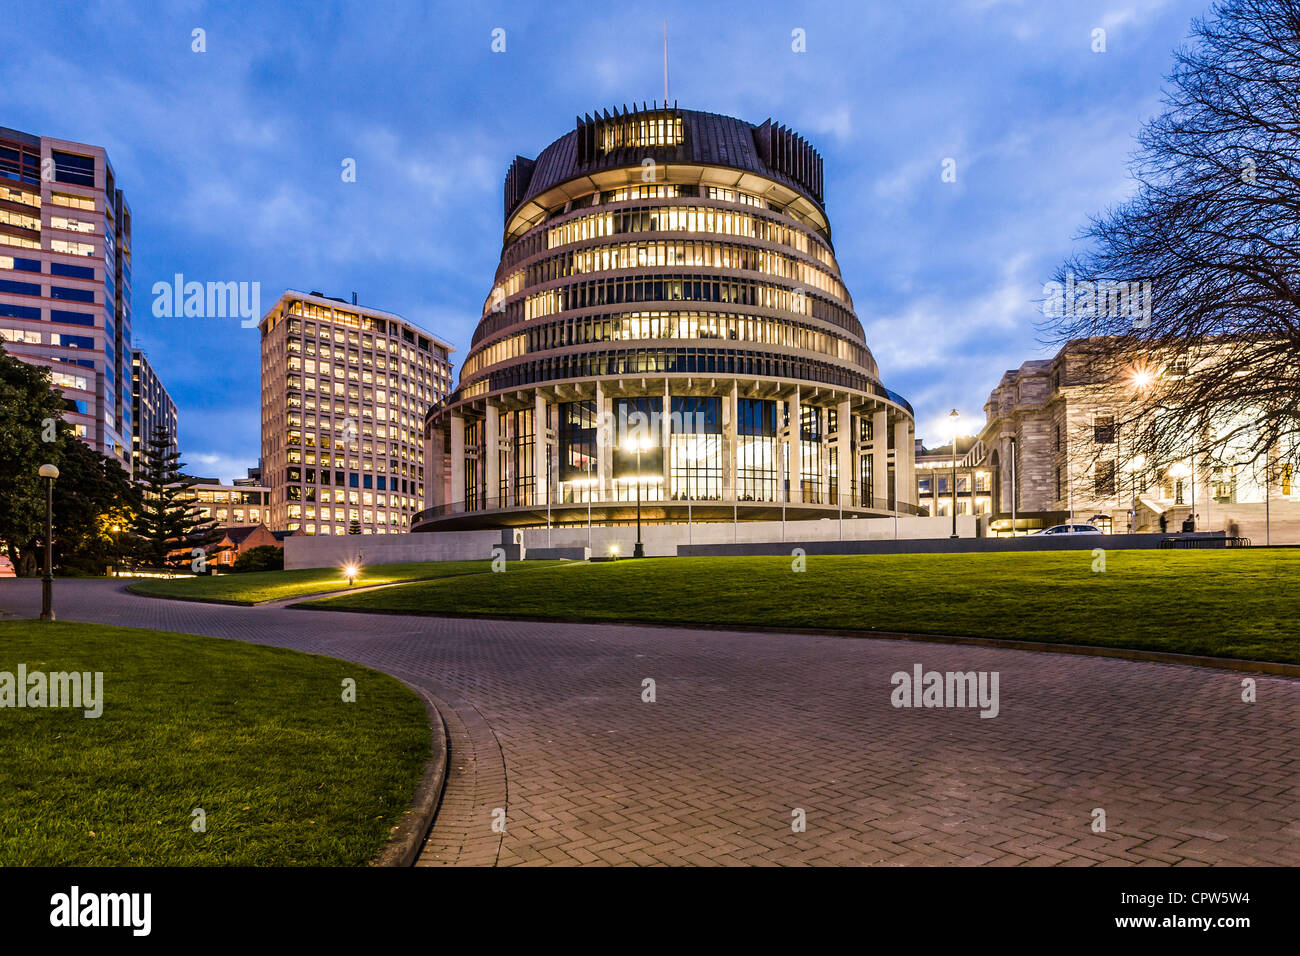 The Beehive, New Zealand's Parliament building, at twilight. - Stock Image